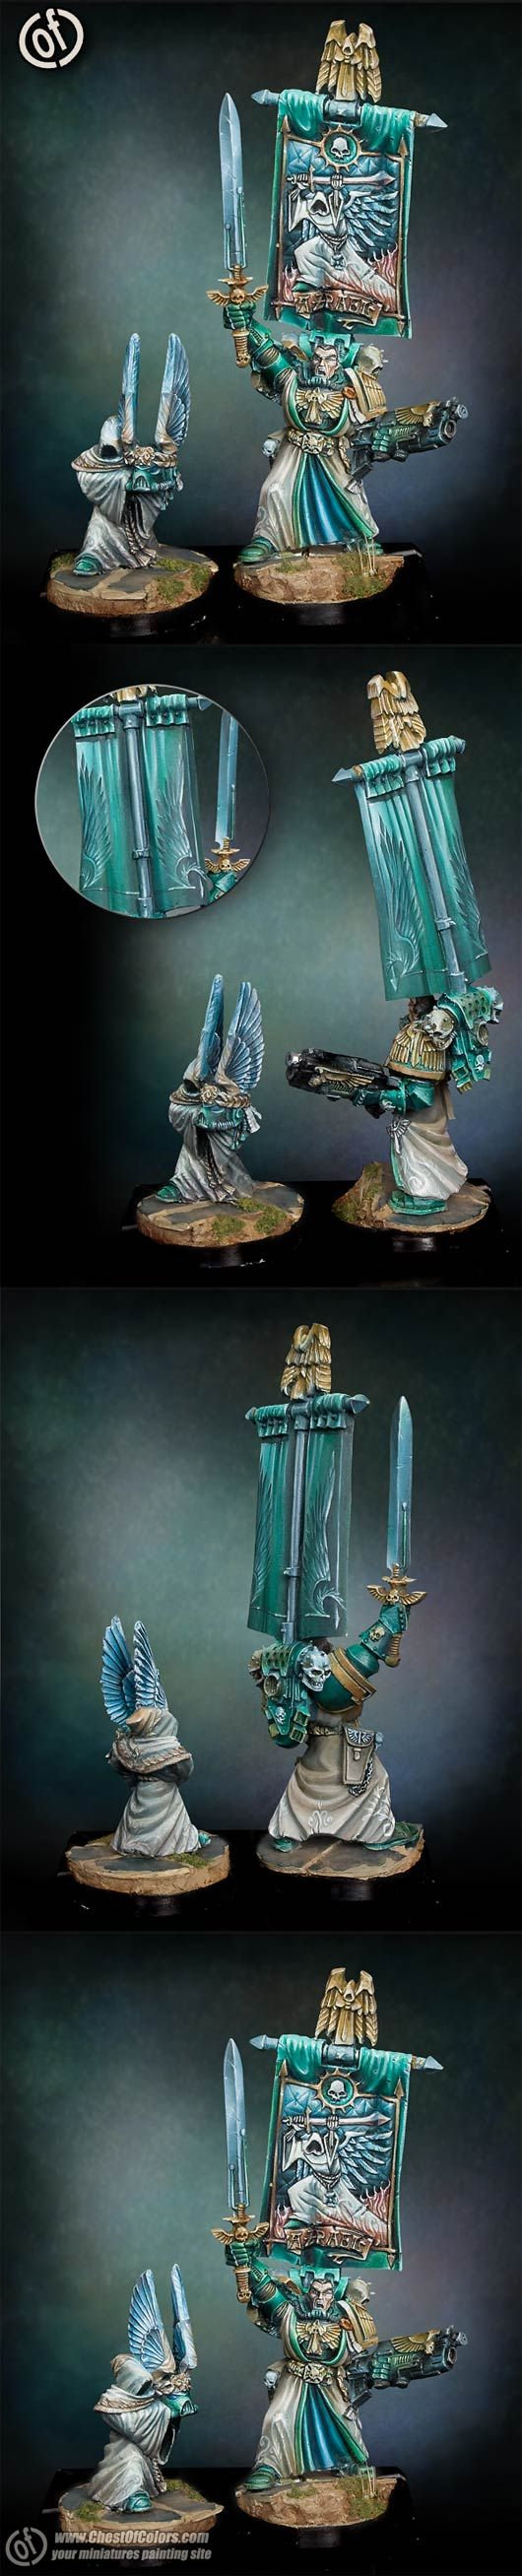 Azrael - grand master of Dark Angels Space Marines